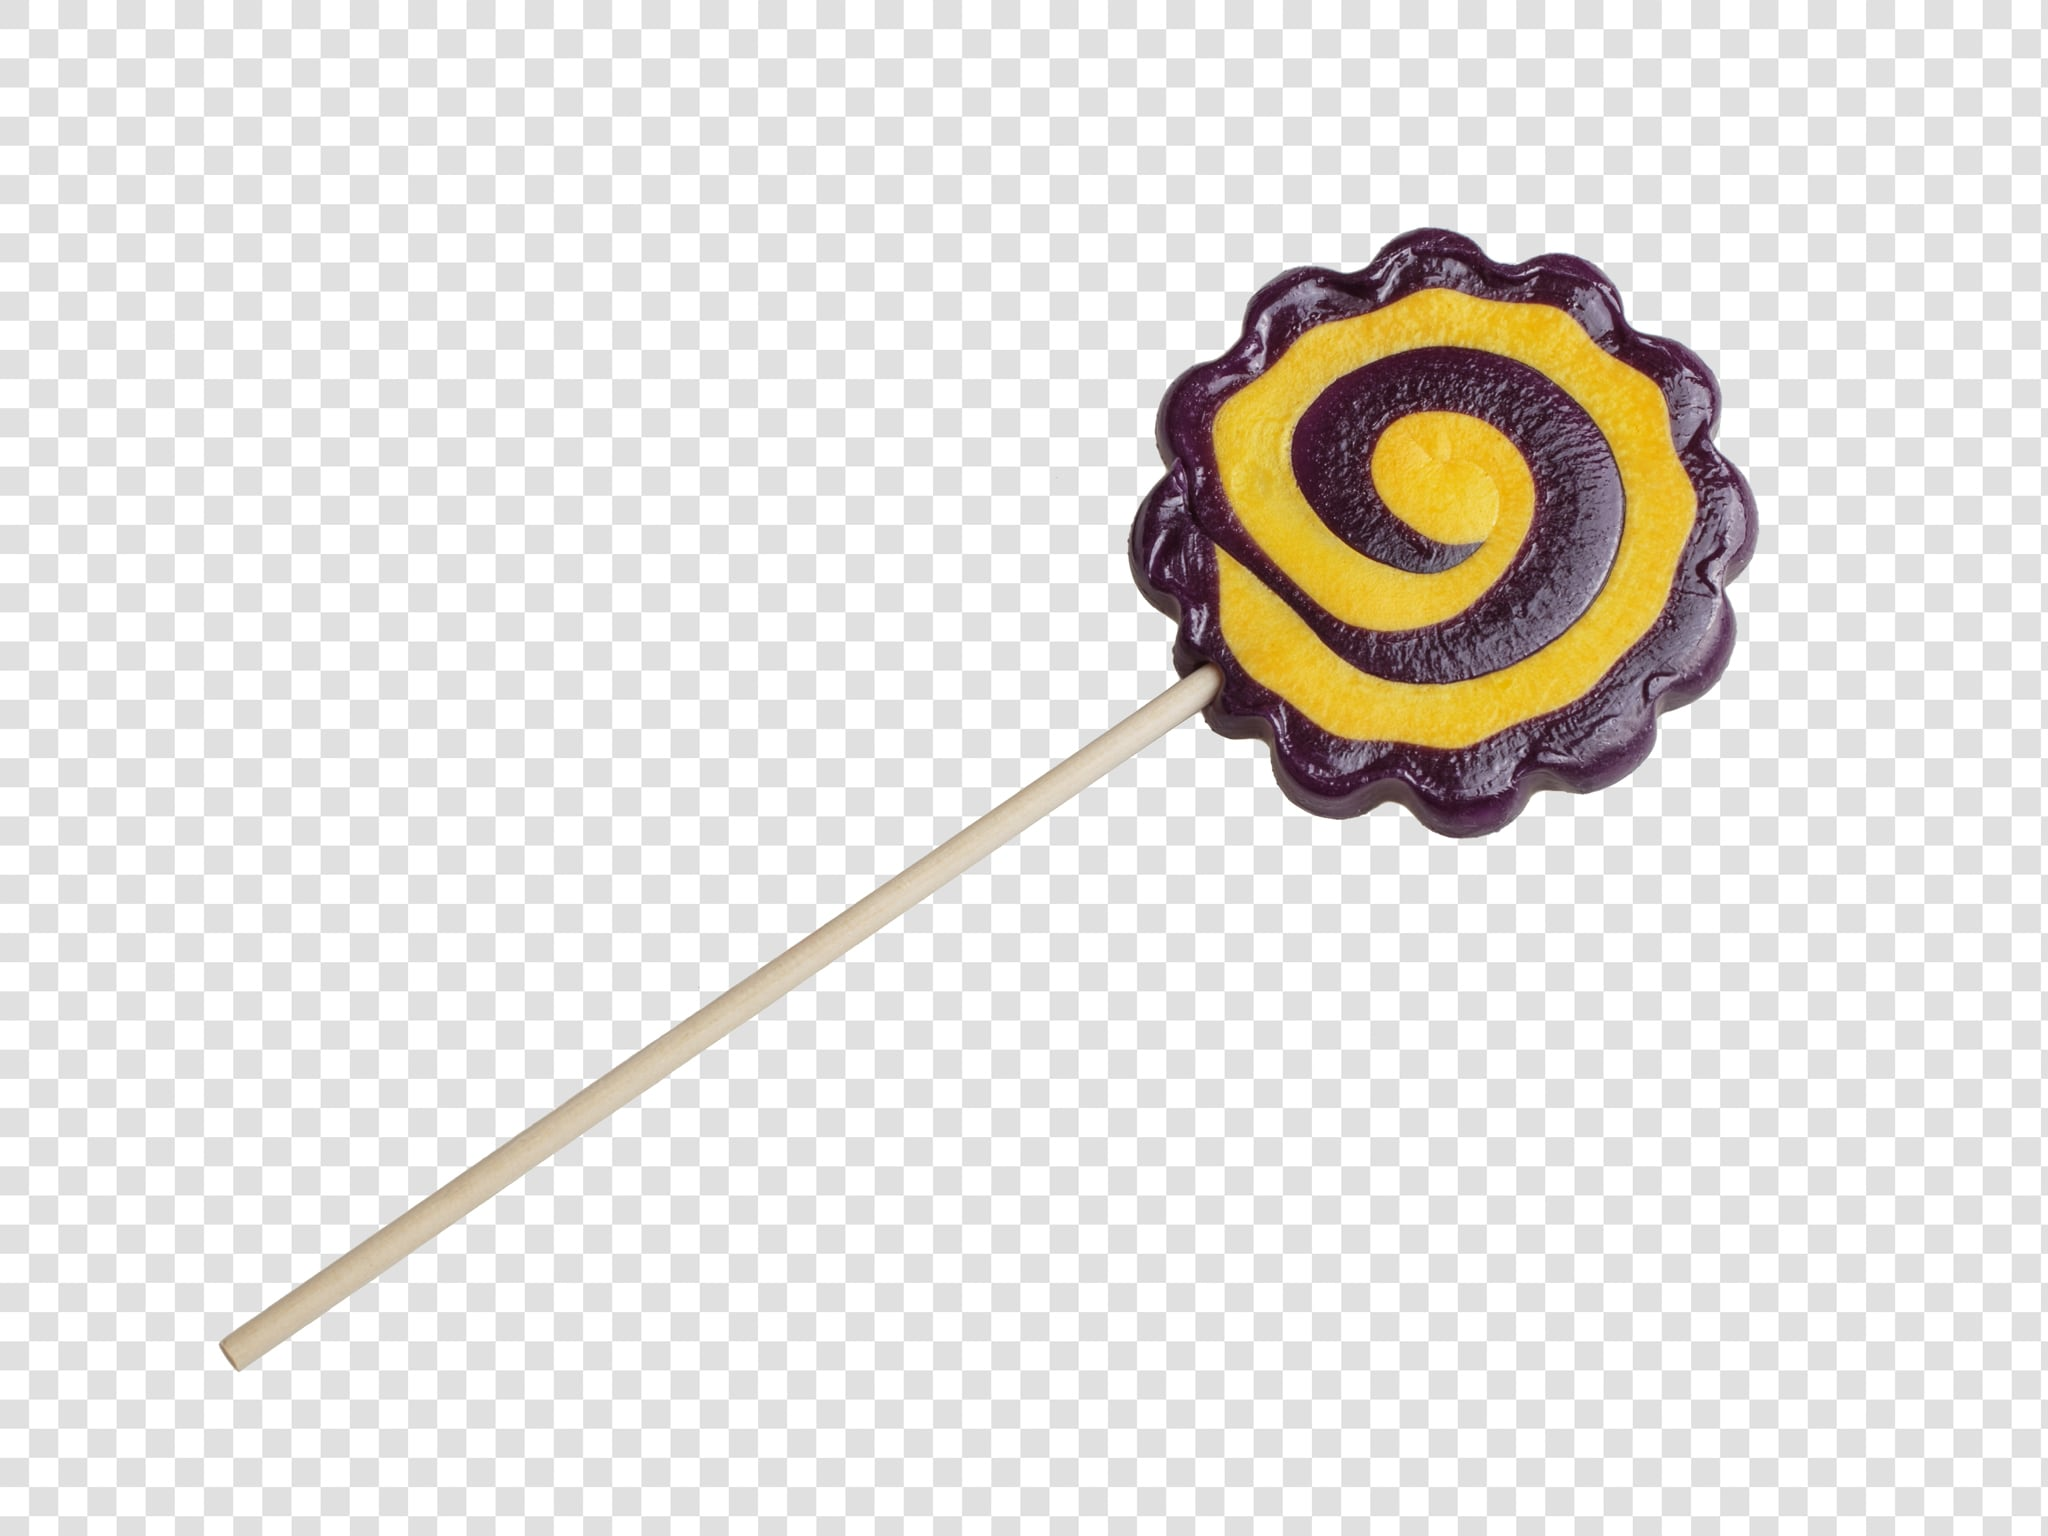 Lollipop PSD image with transparent background